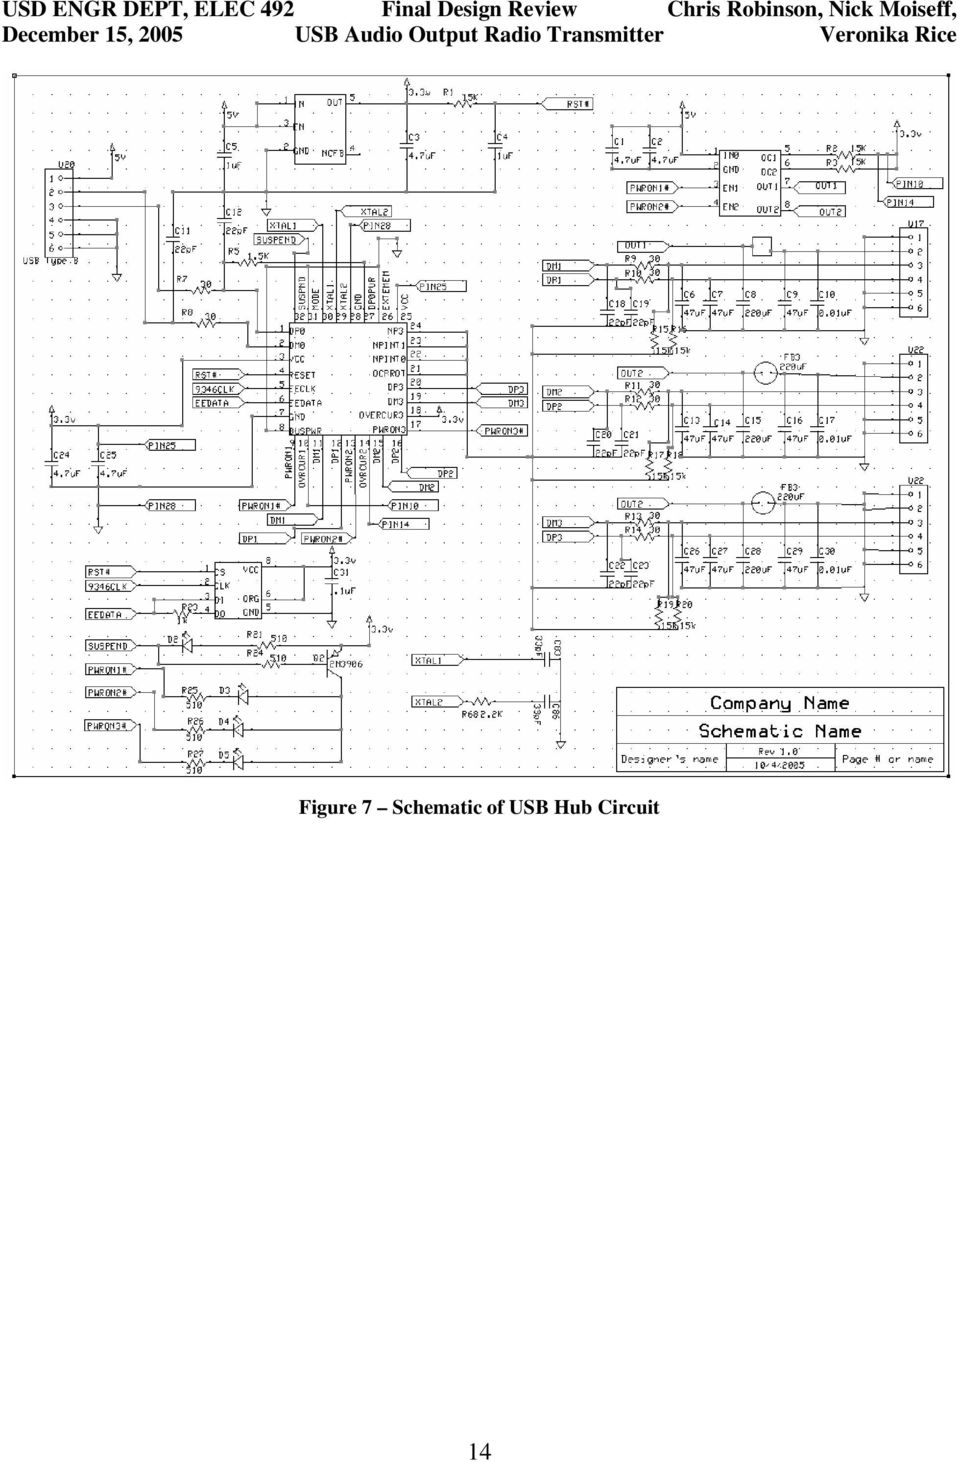 Usb Audio Output Transmitter Electrical Engineering Senior Design Pdf Mp3 Player Circuit Board Rev A Schematic Diagrams 15 Figure 8 Hub Pcb Layout